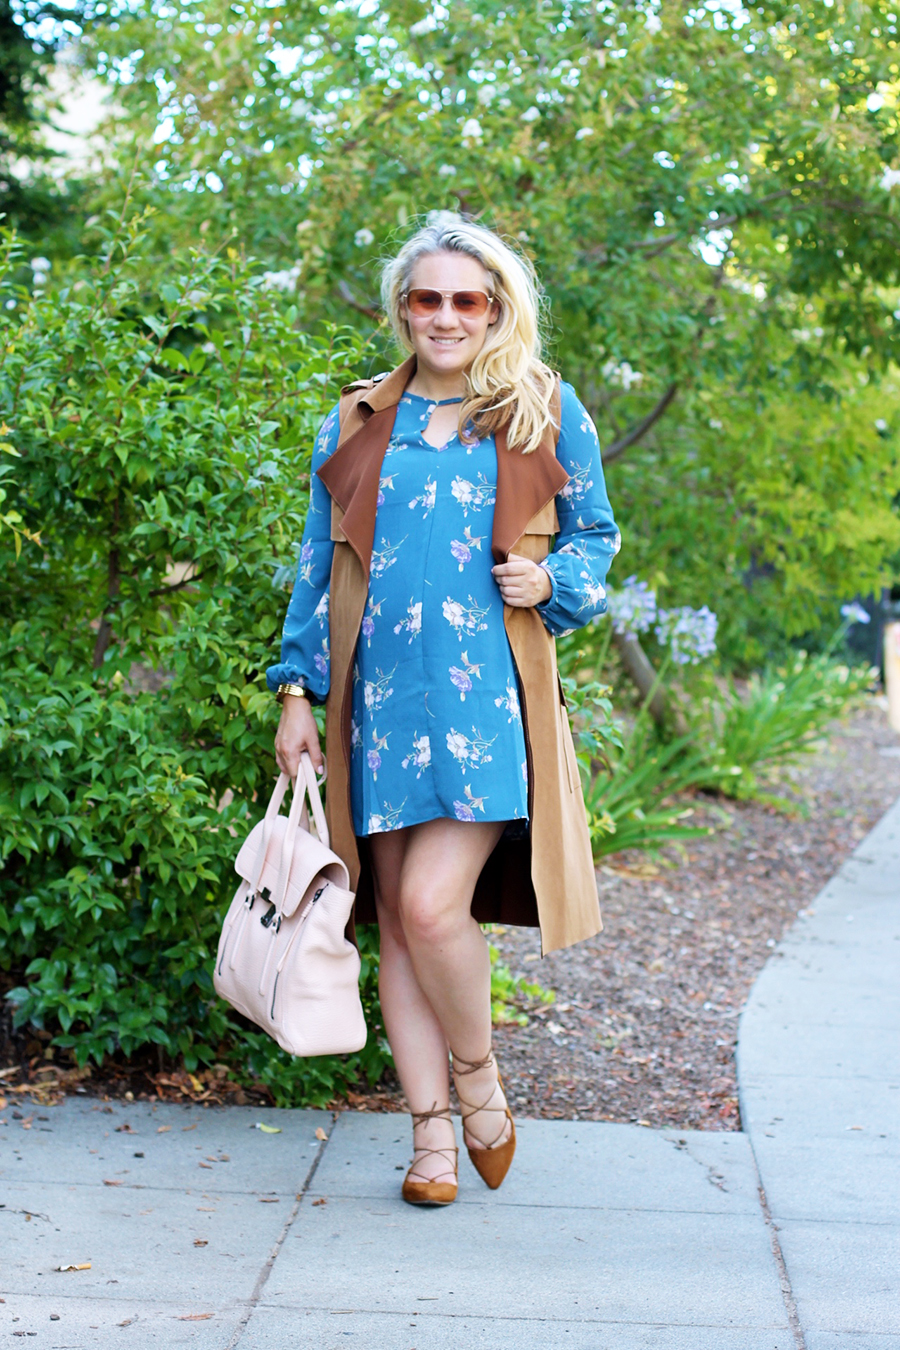 Fall Transition-Nordstrom Anniversary Sale-Maternity Style-Fall Fashion-Have Need Want 6